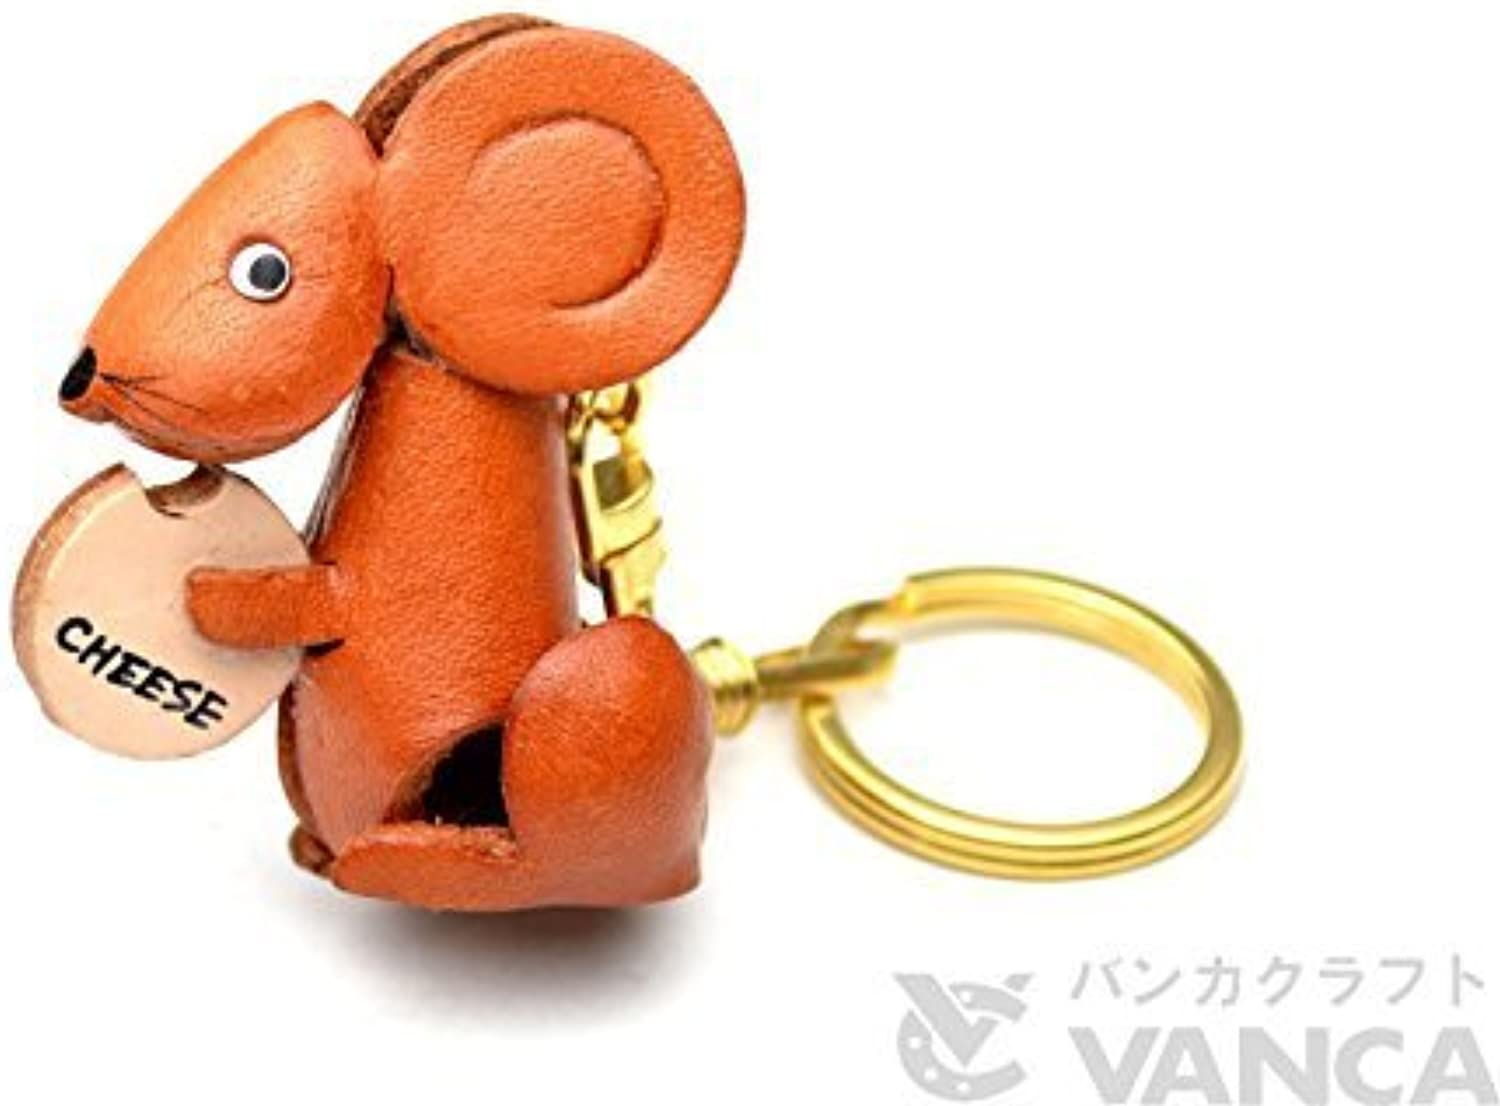 [Handmade made in Japan, new, leather craftsman] KH story keychains cheese mouse [VANCA] (japan import)